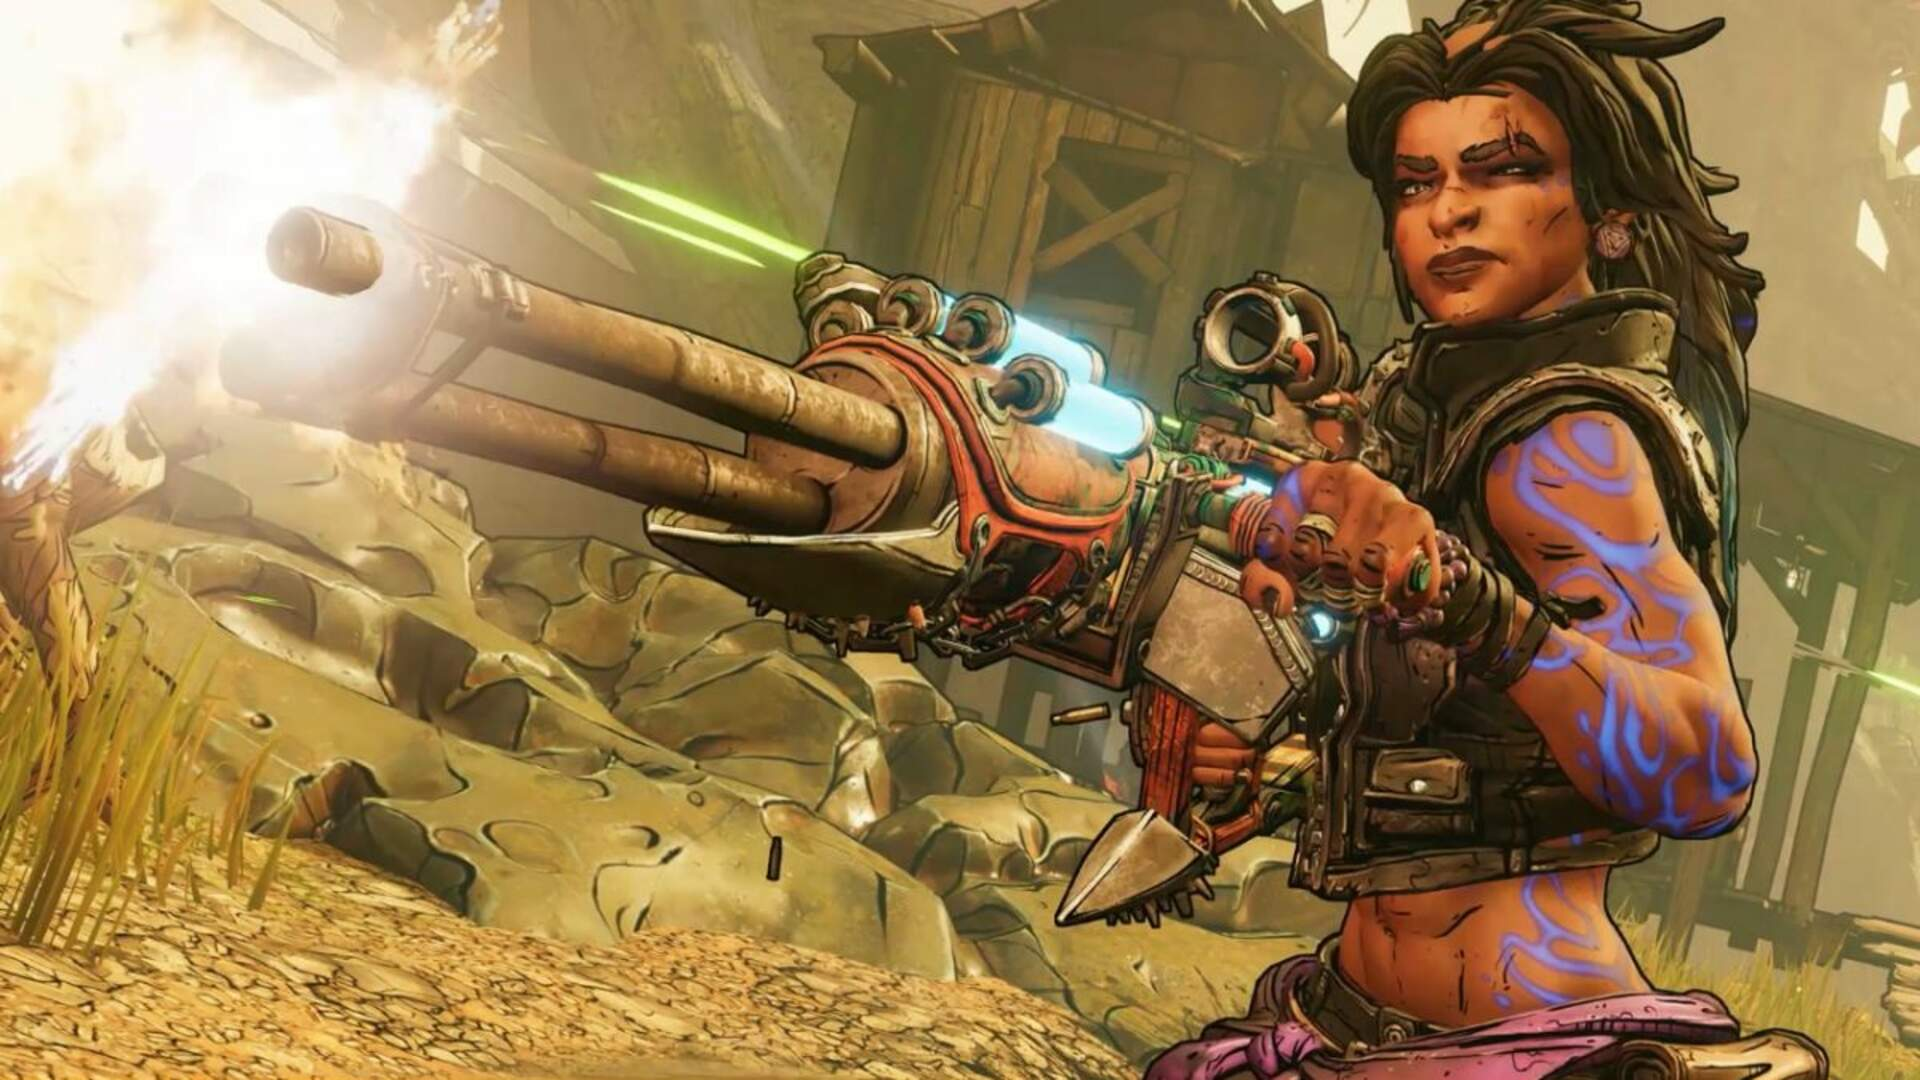 The Strange Saga of Borderlands 3's Reviews